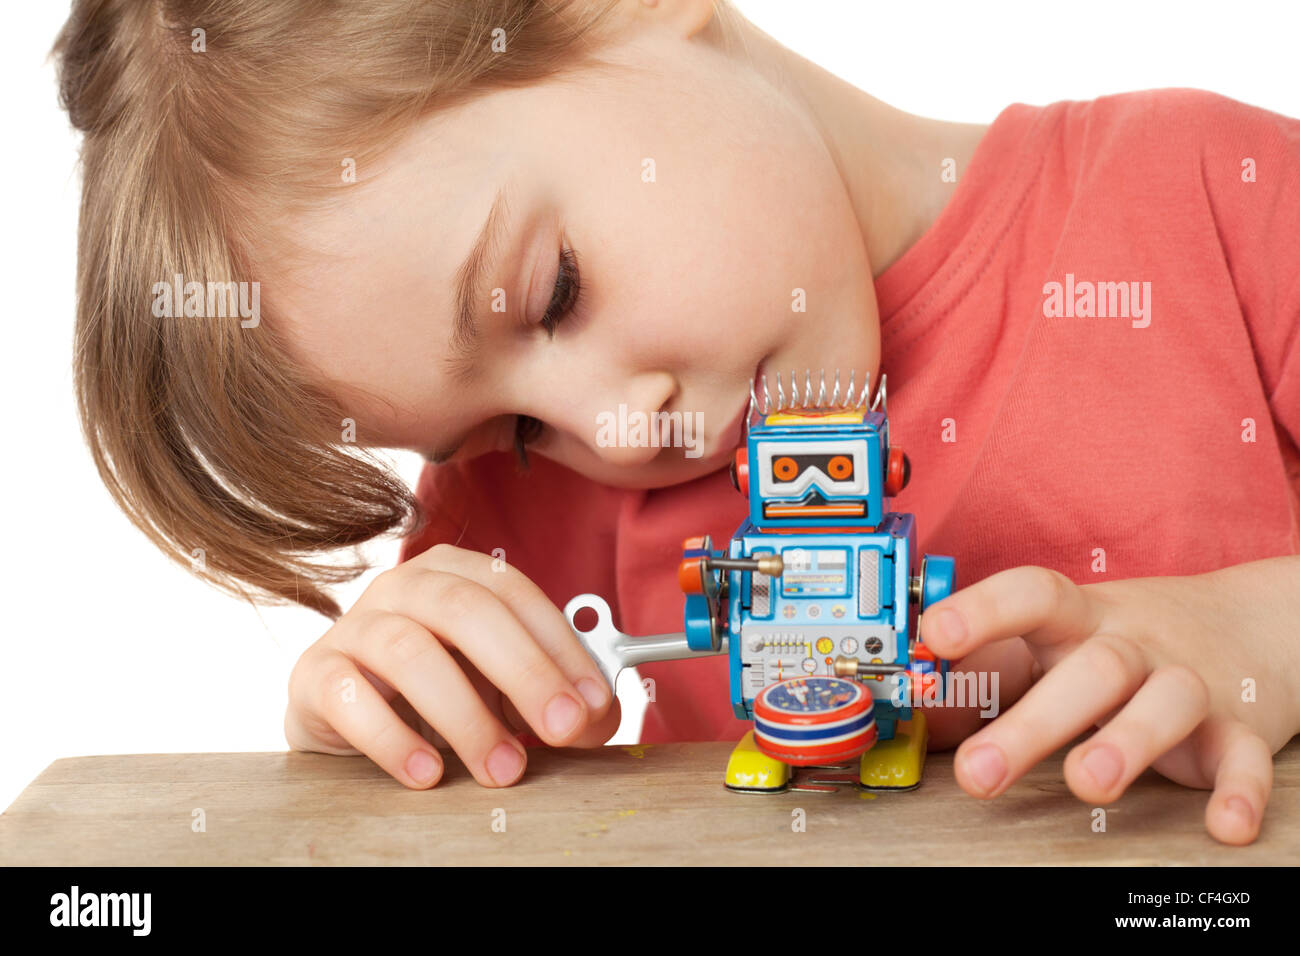 little girl in red T-shirt plays with clockwork robot isolated on white background - Stock Image